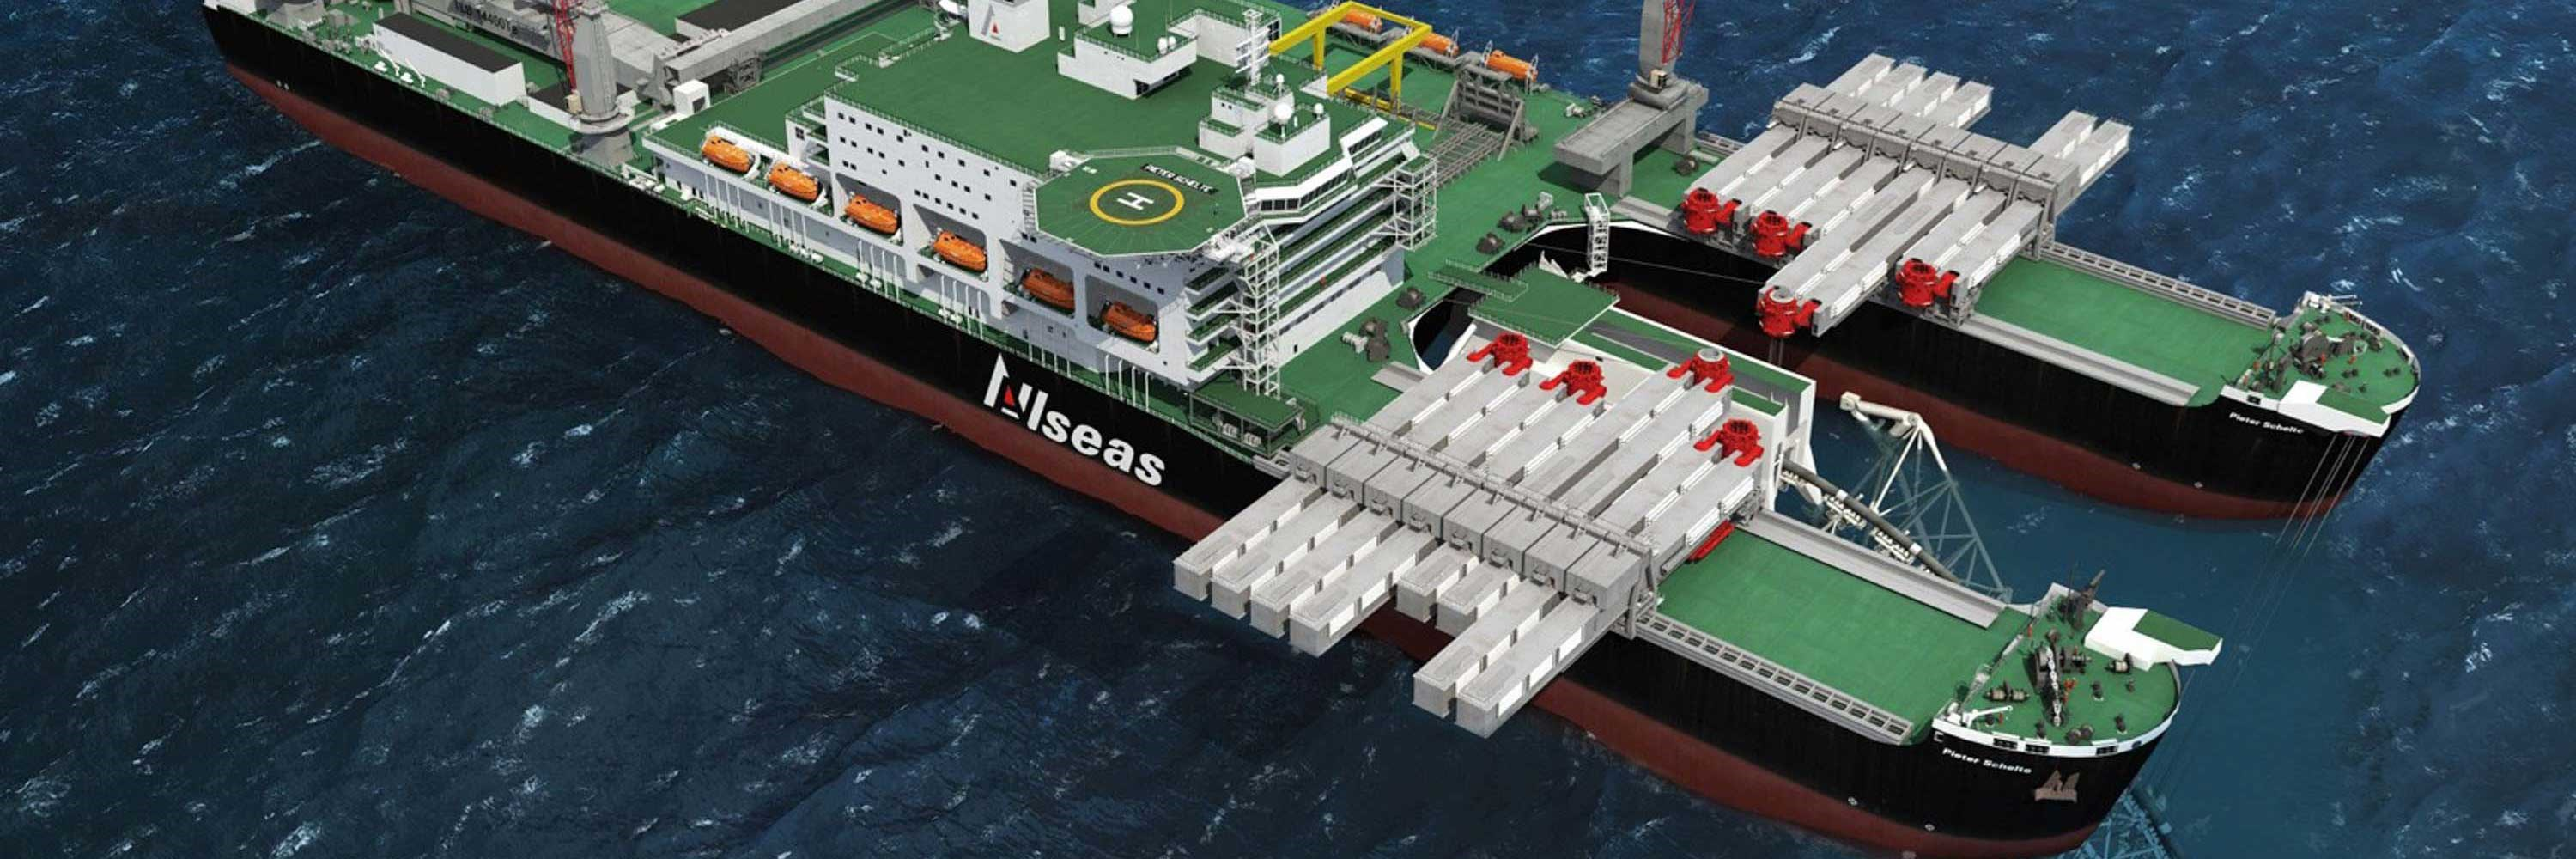 allseas-pioneering-spirit-in-pipelay-mode-3000